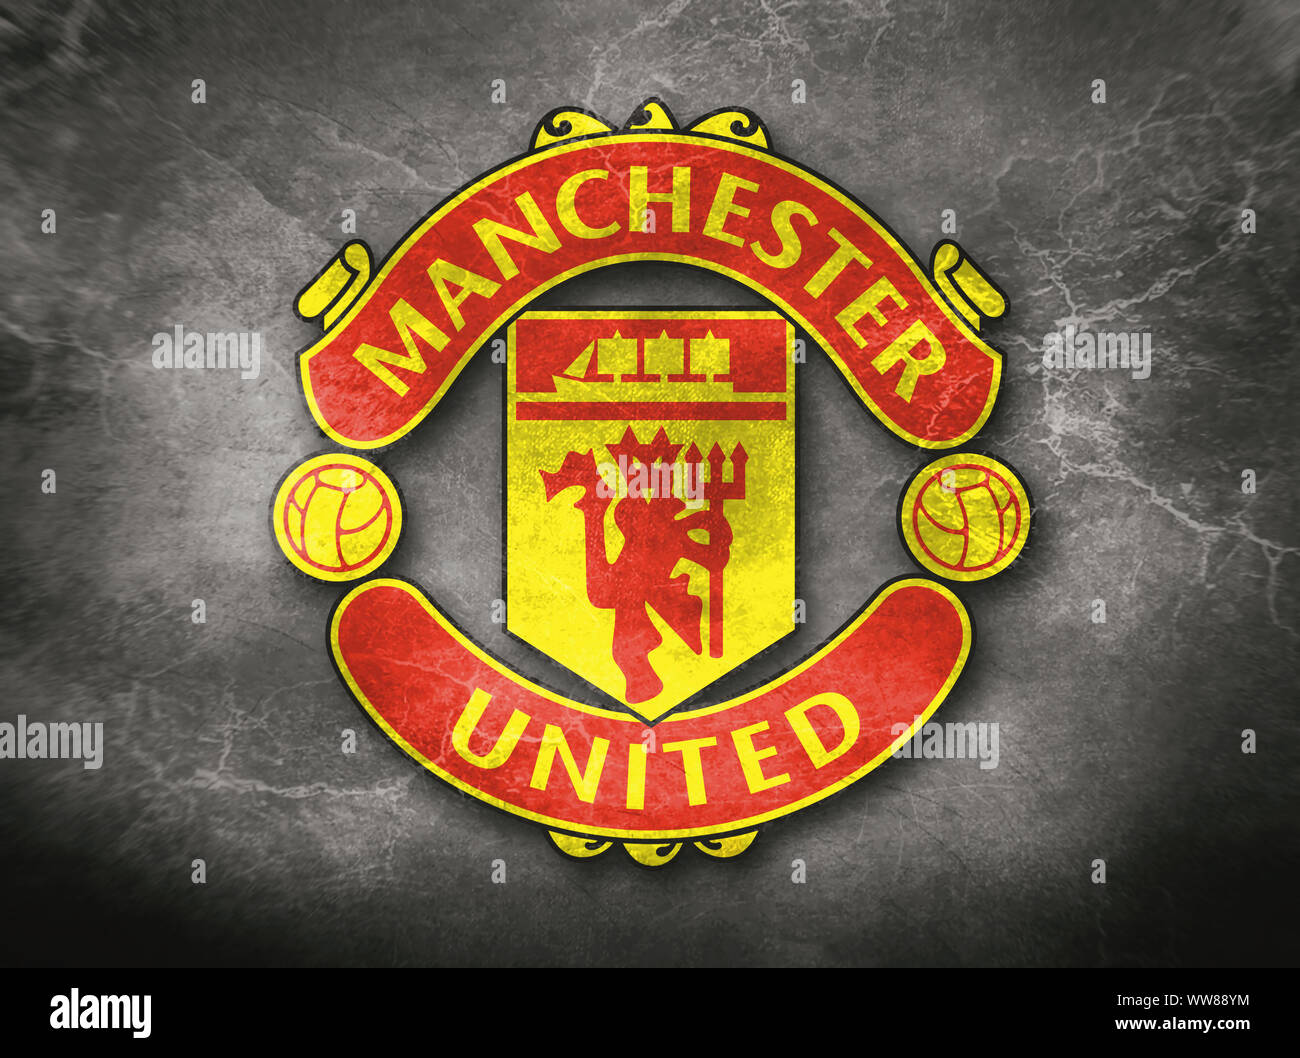 manchester coat of arms high resolution stock photography and images alamy https www alamy com coat of arms manchester united a football club from england a concrete background image273704584 html